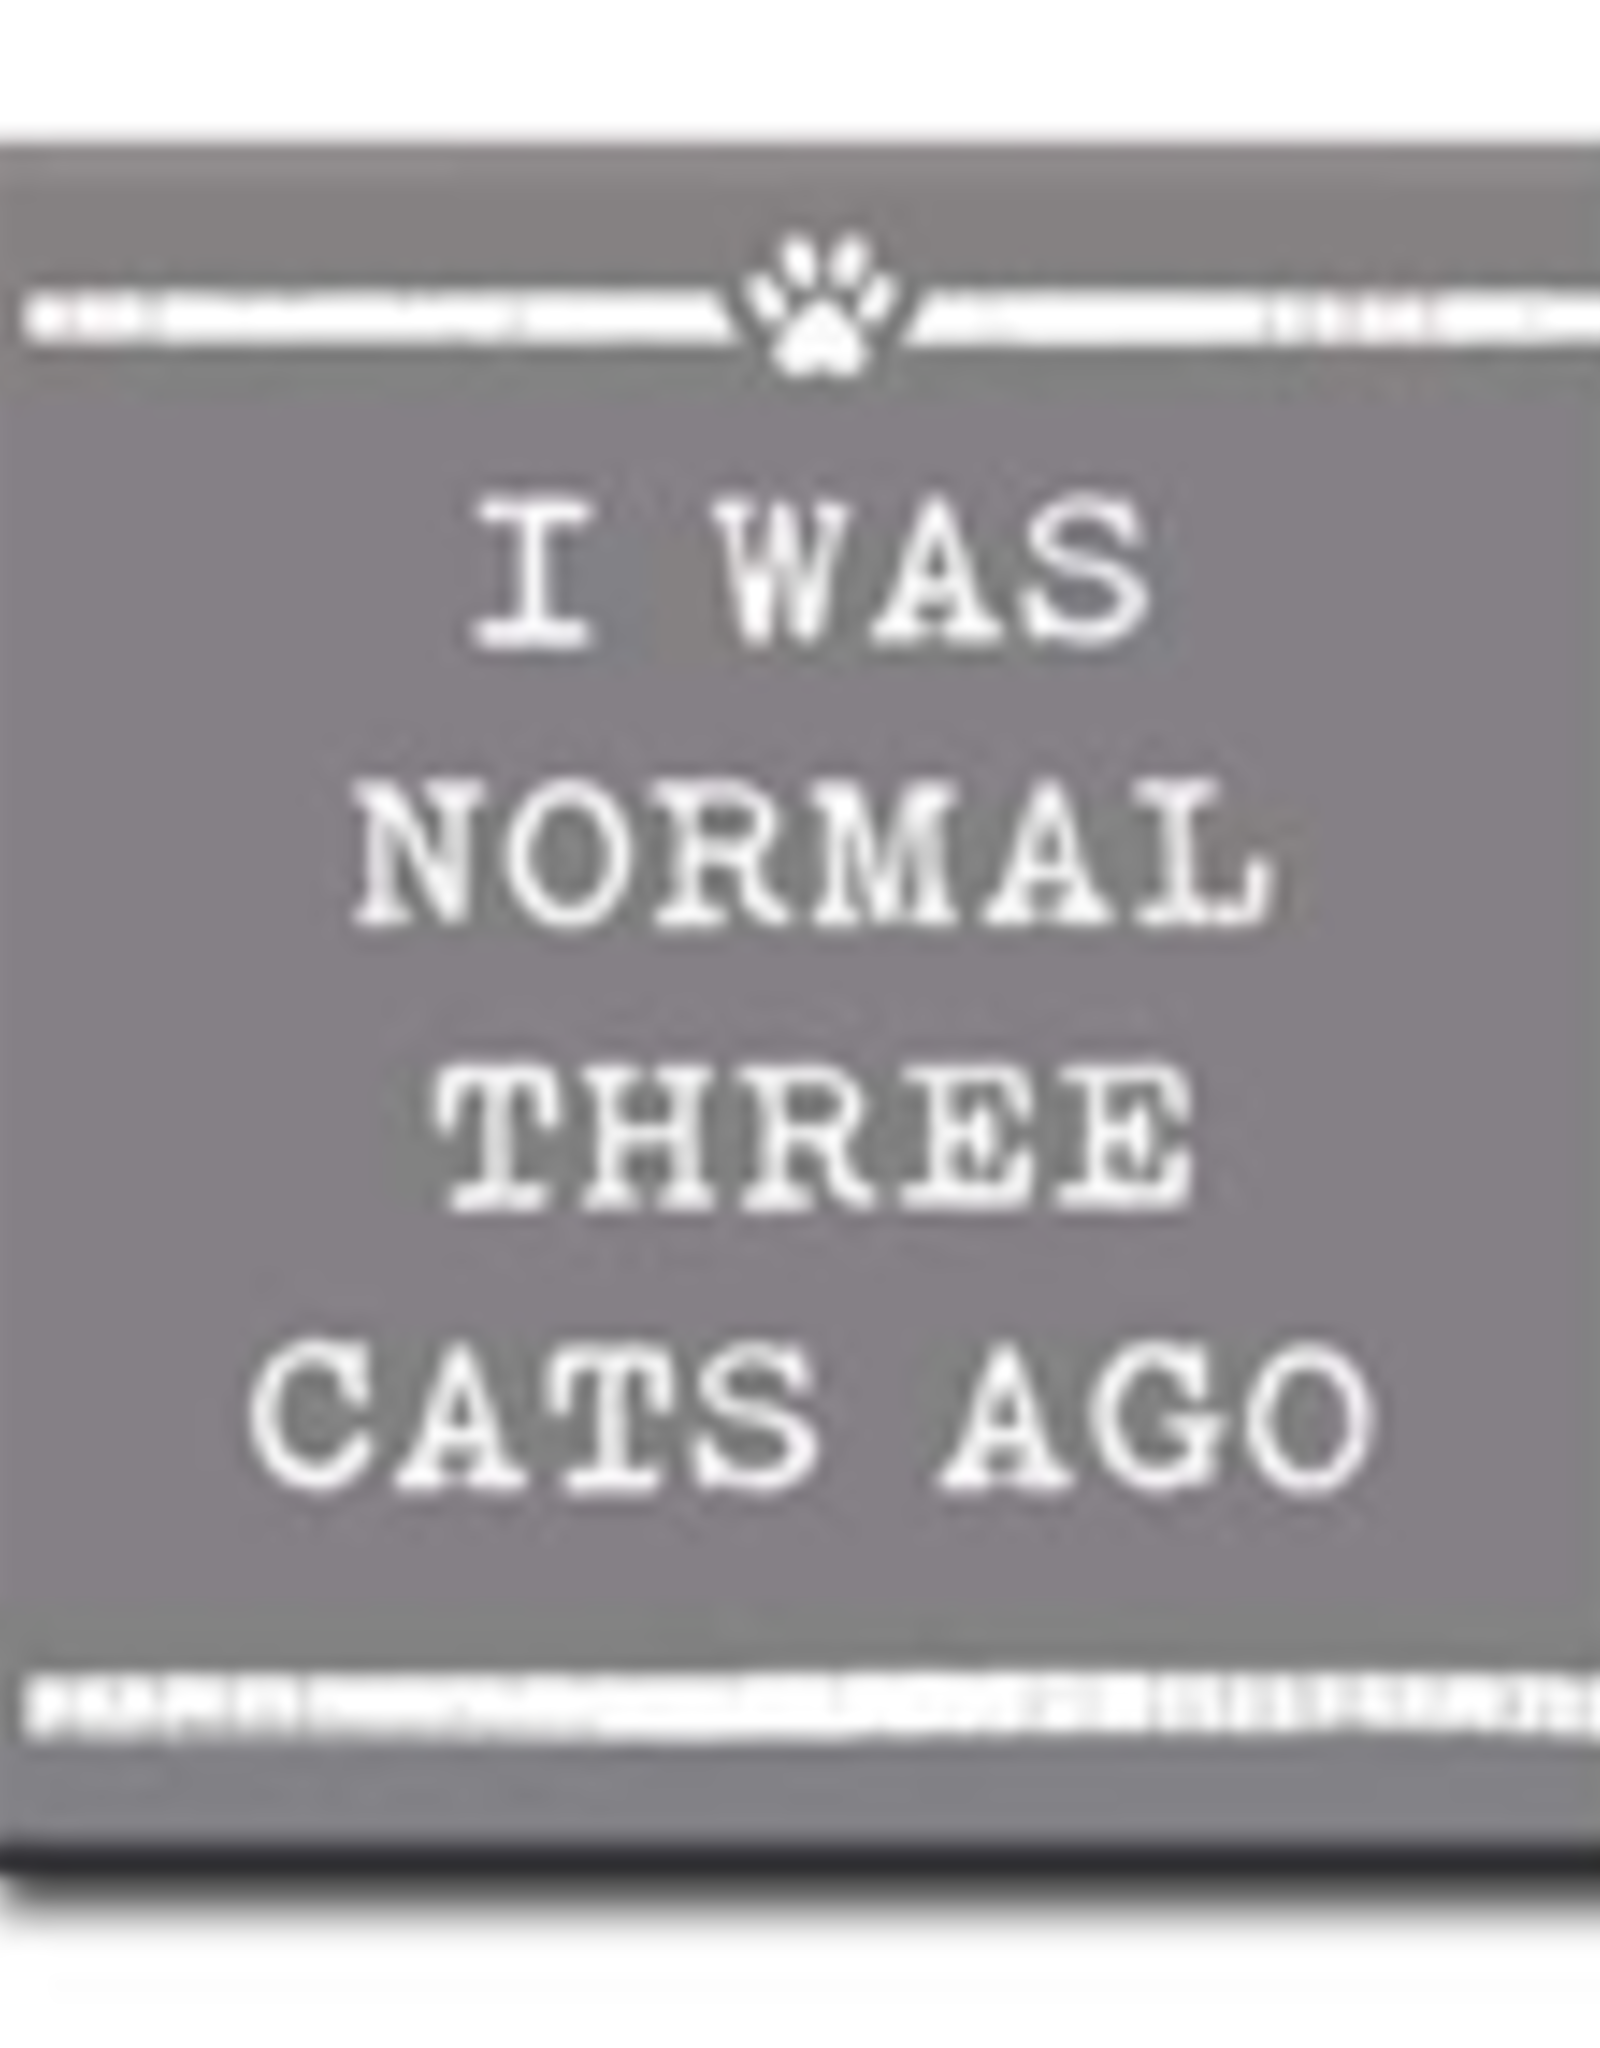 I Was Normal Three Cats Ago 4x4